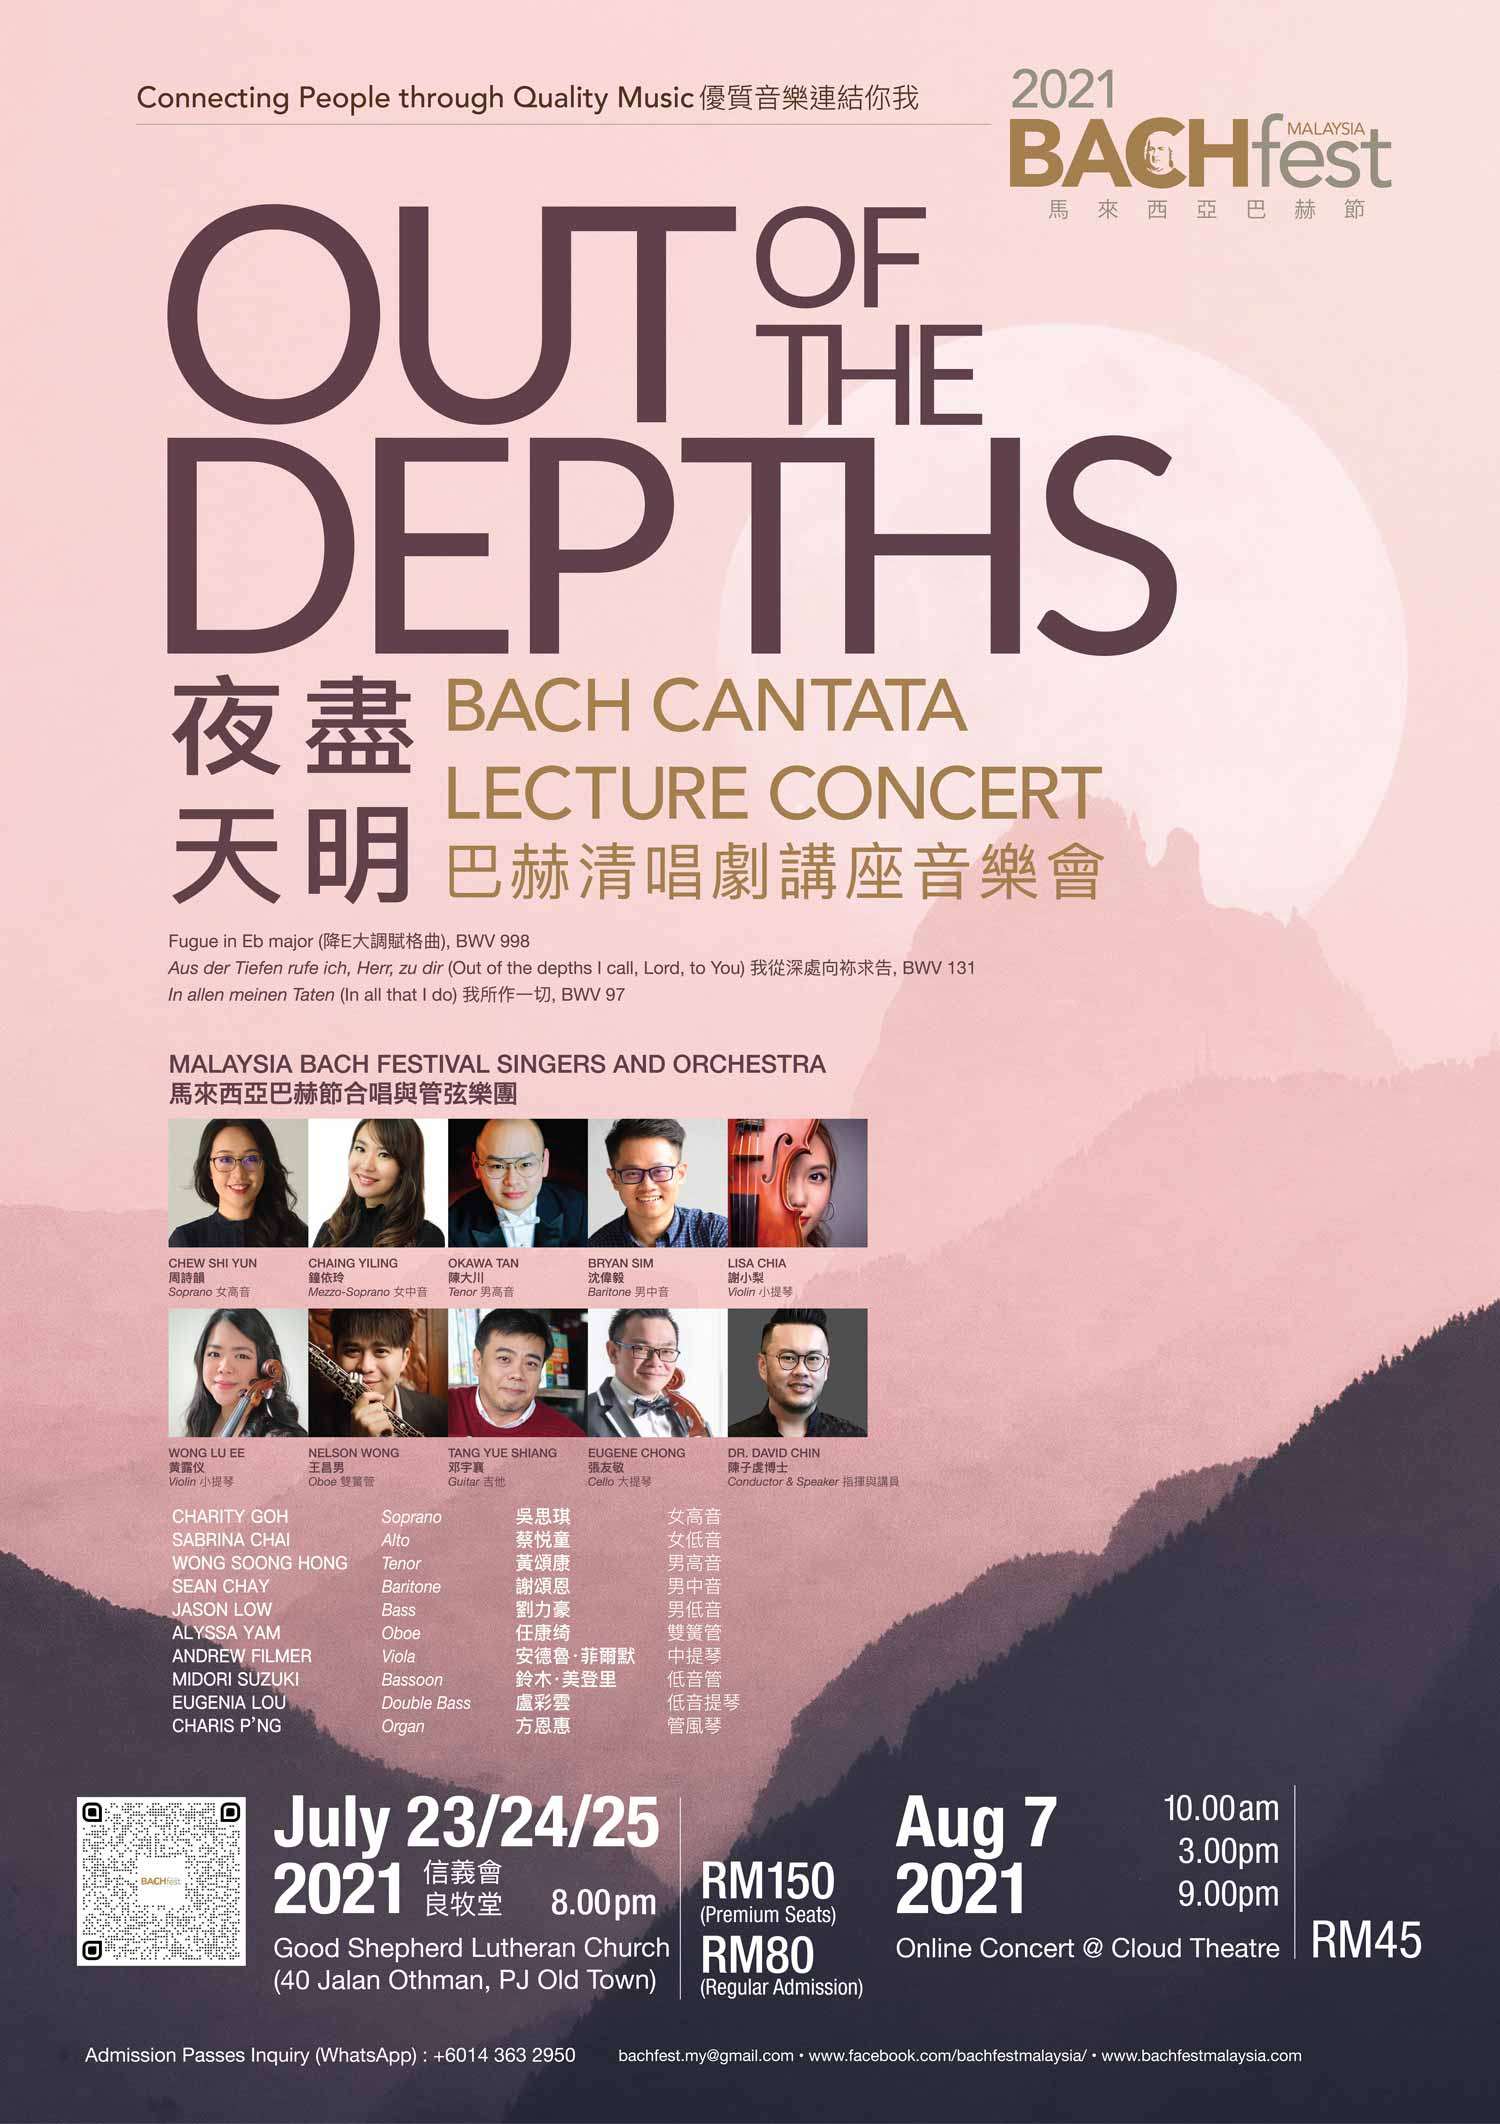 """Bachfest Malaysia """"OUT OF THE DEPTHS"""" Bach Cantata Lecture Concert 馬來西亞巴赫節《夜盡天明》巴赫清唱劇講座音樂會"""